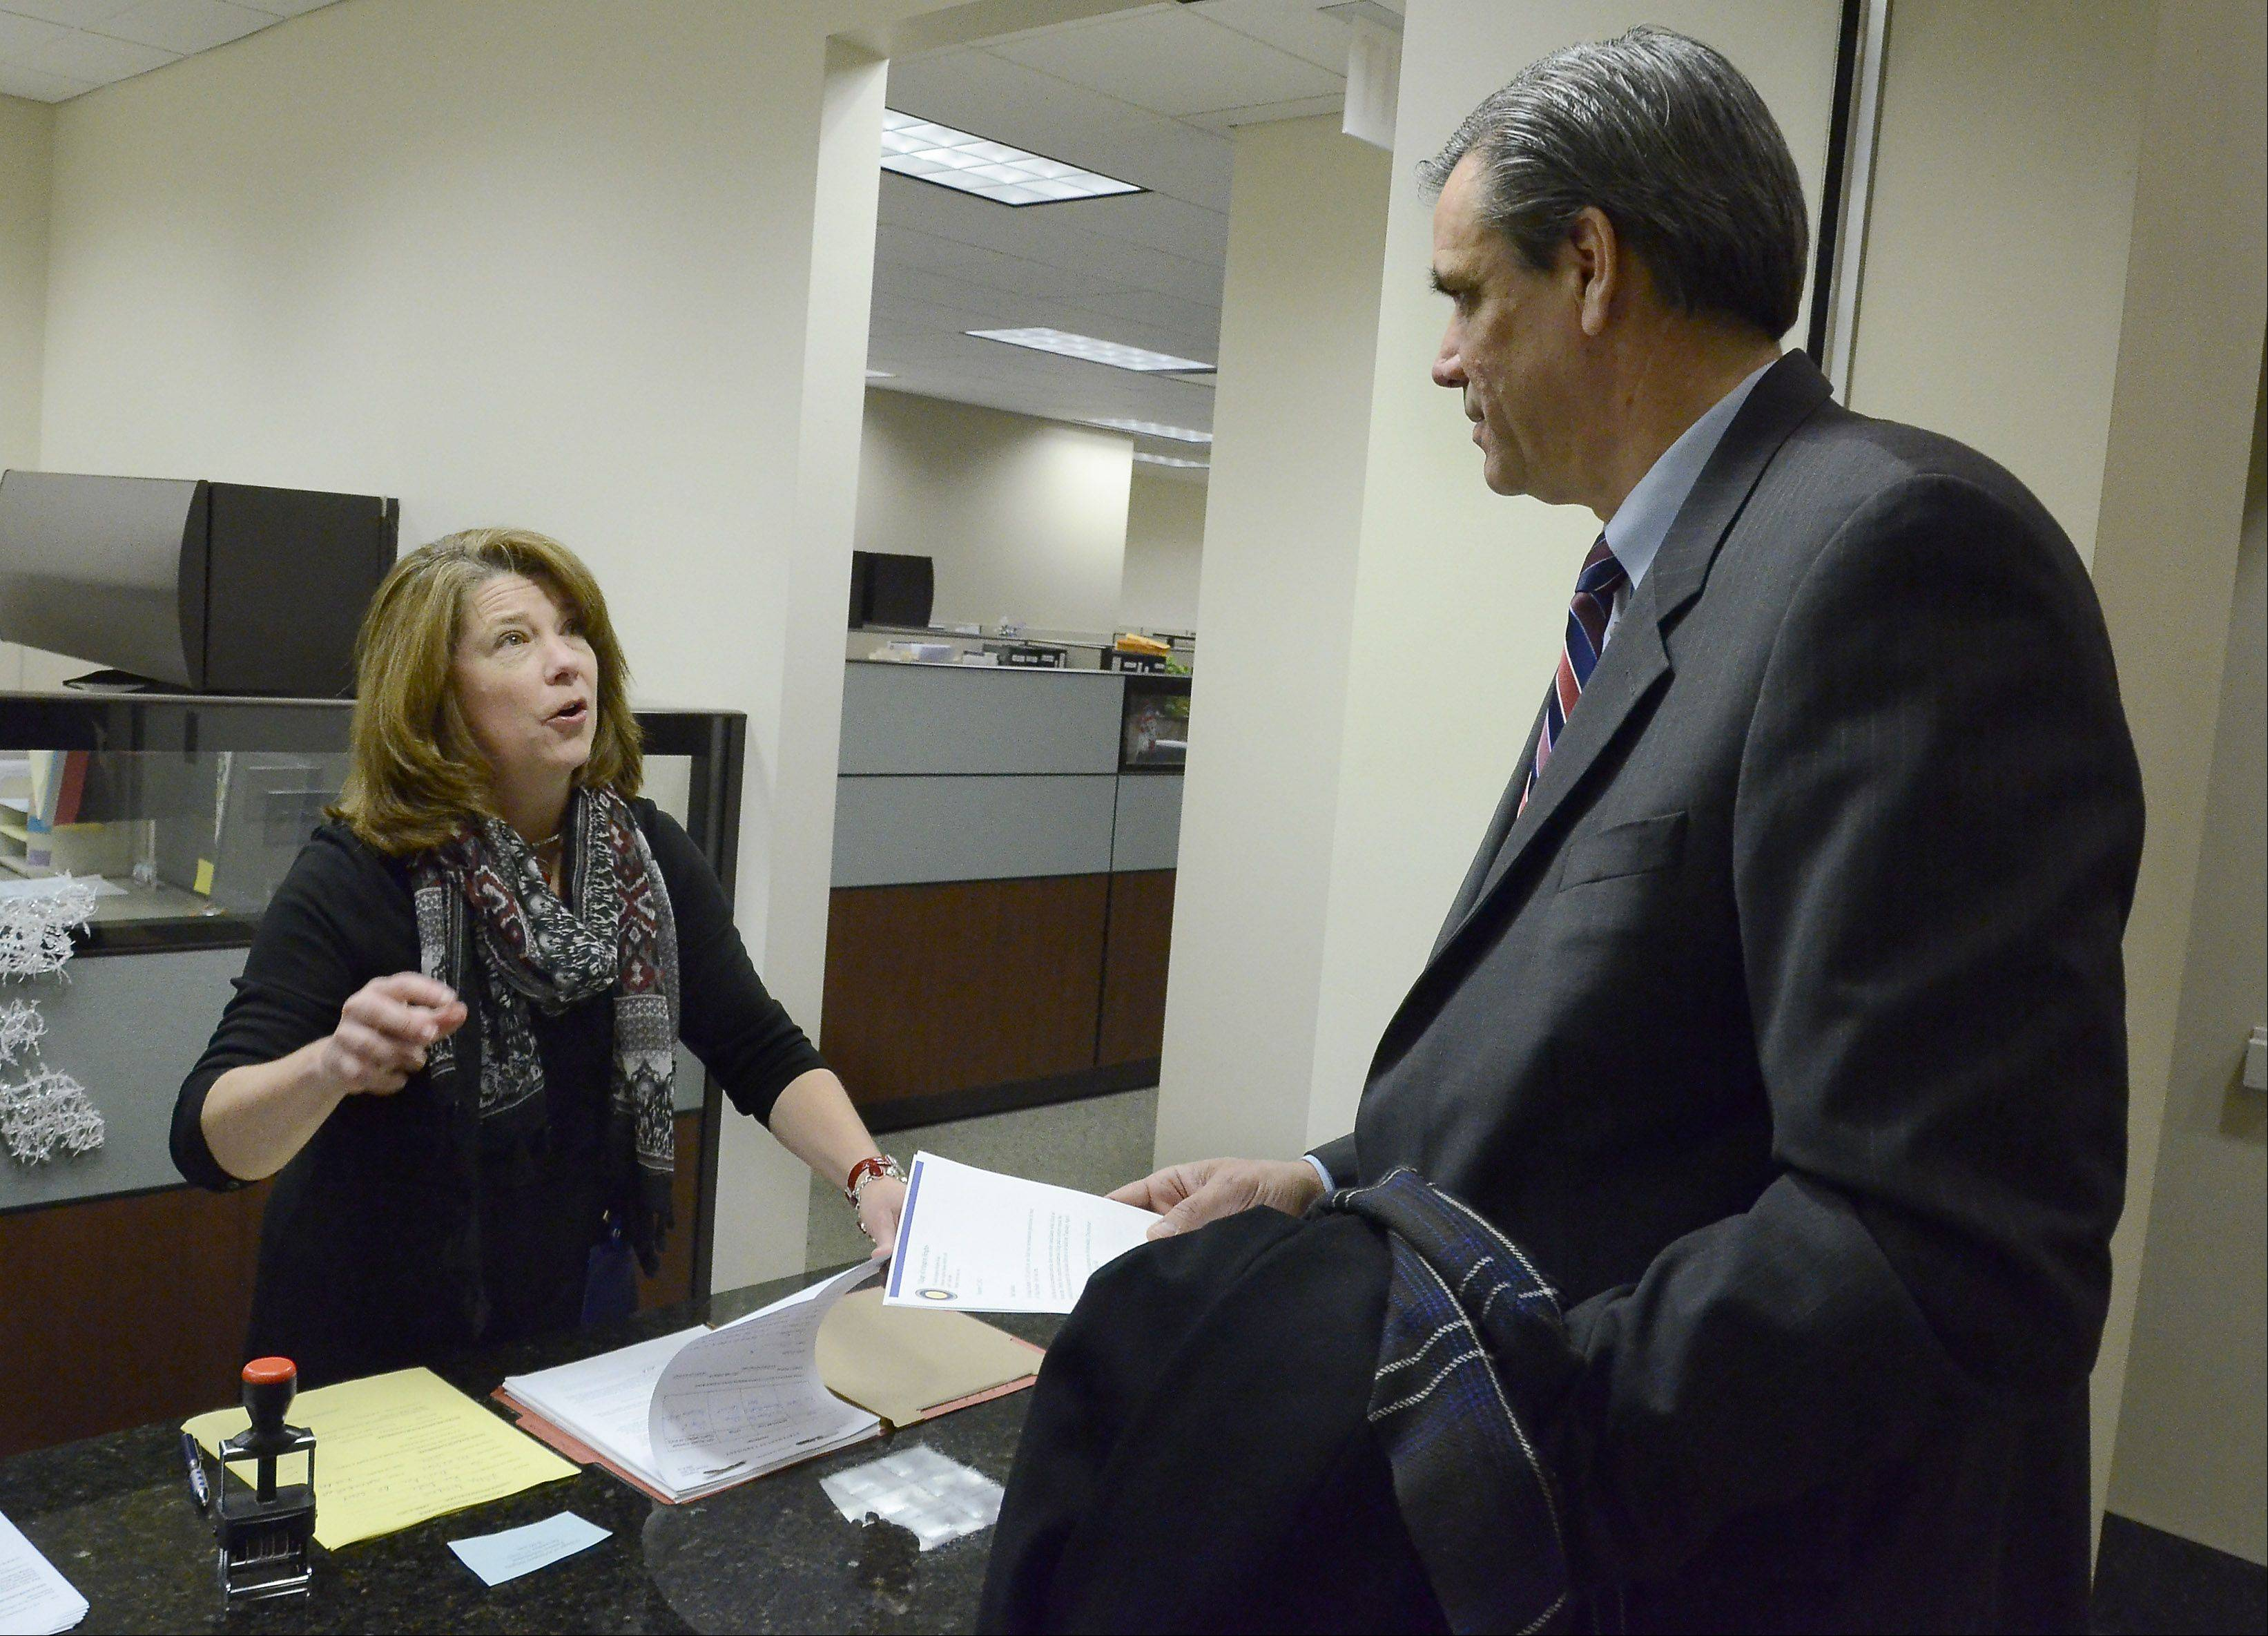 Ron Drake is the first mayoral candidate to file with Arlington Heights Village Clerk Rebecca Hume on Dec. 18.